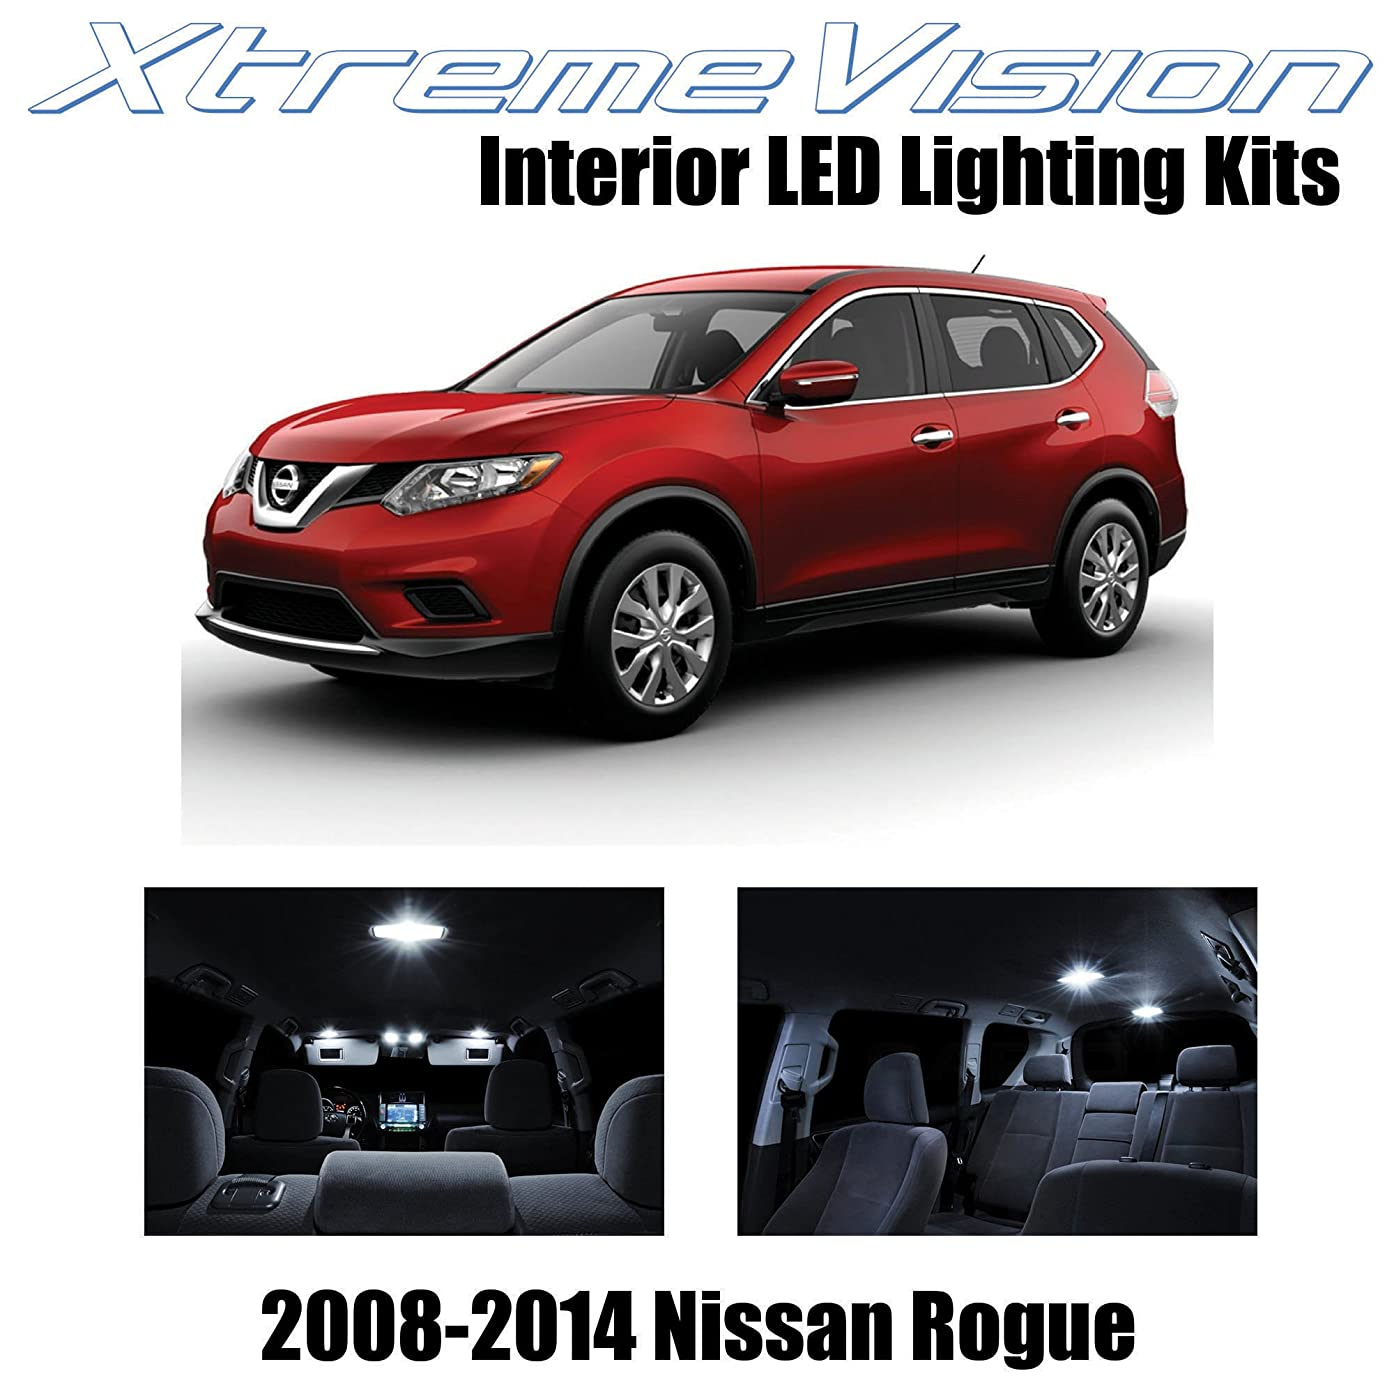 XtremeVision Interior LED for Nissan Rogue 2008-2014 (12 Pieces) Pure White Interior LED Kit + Installation Tool